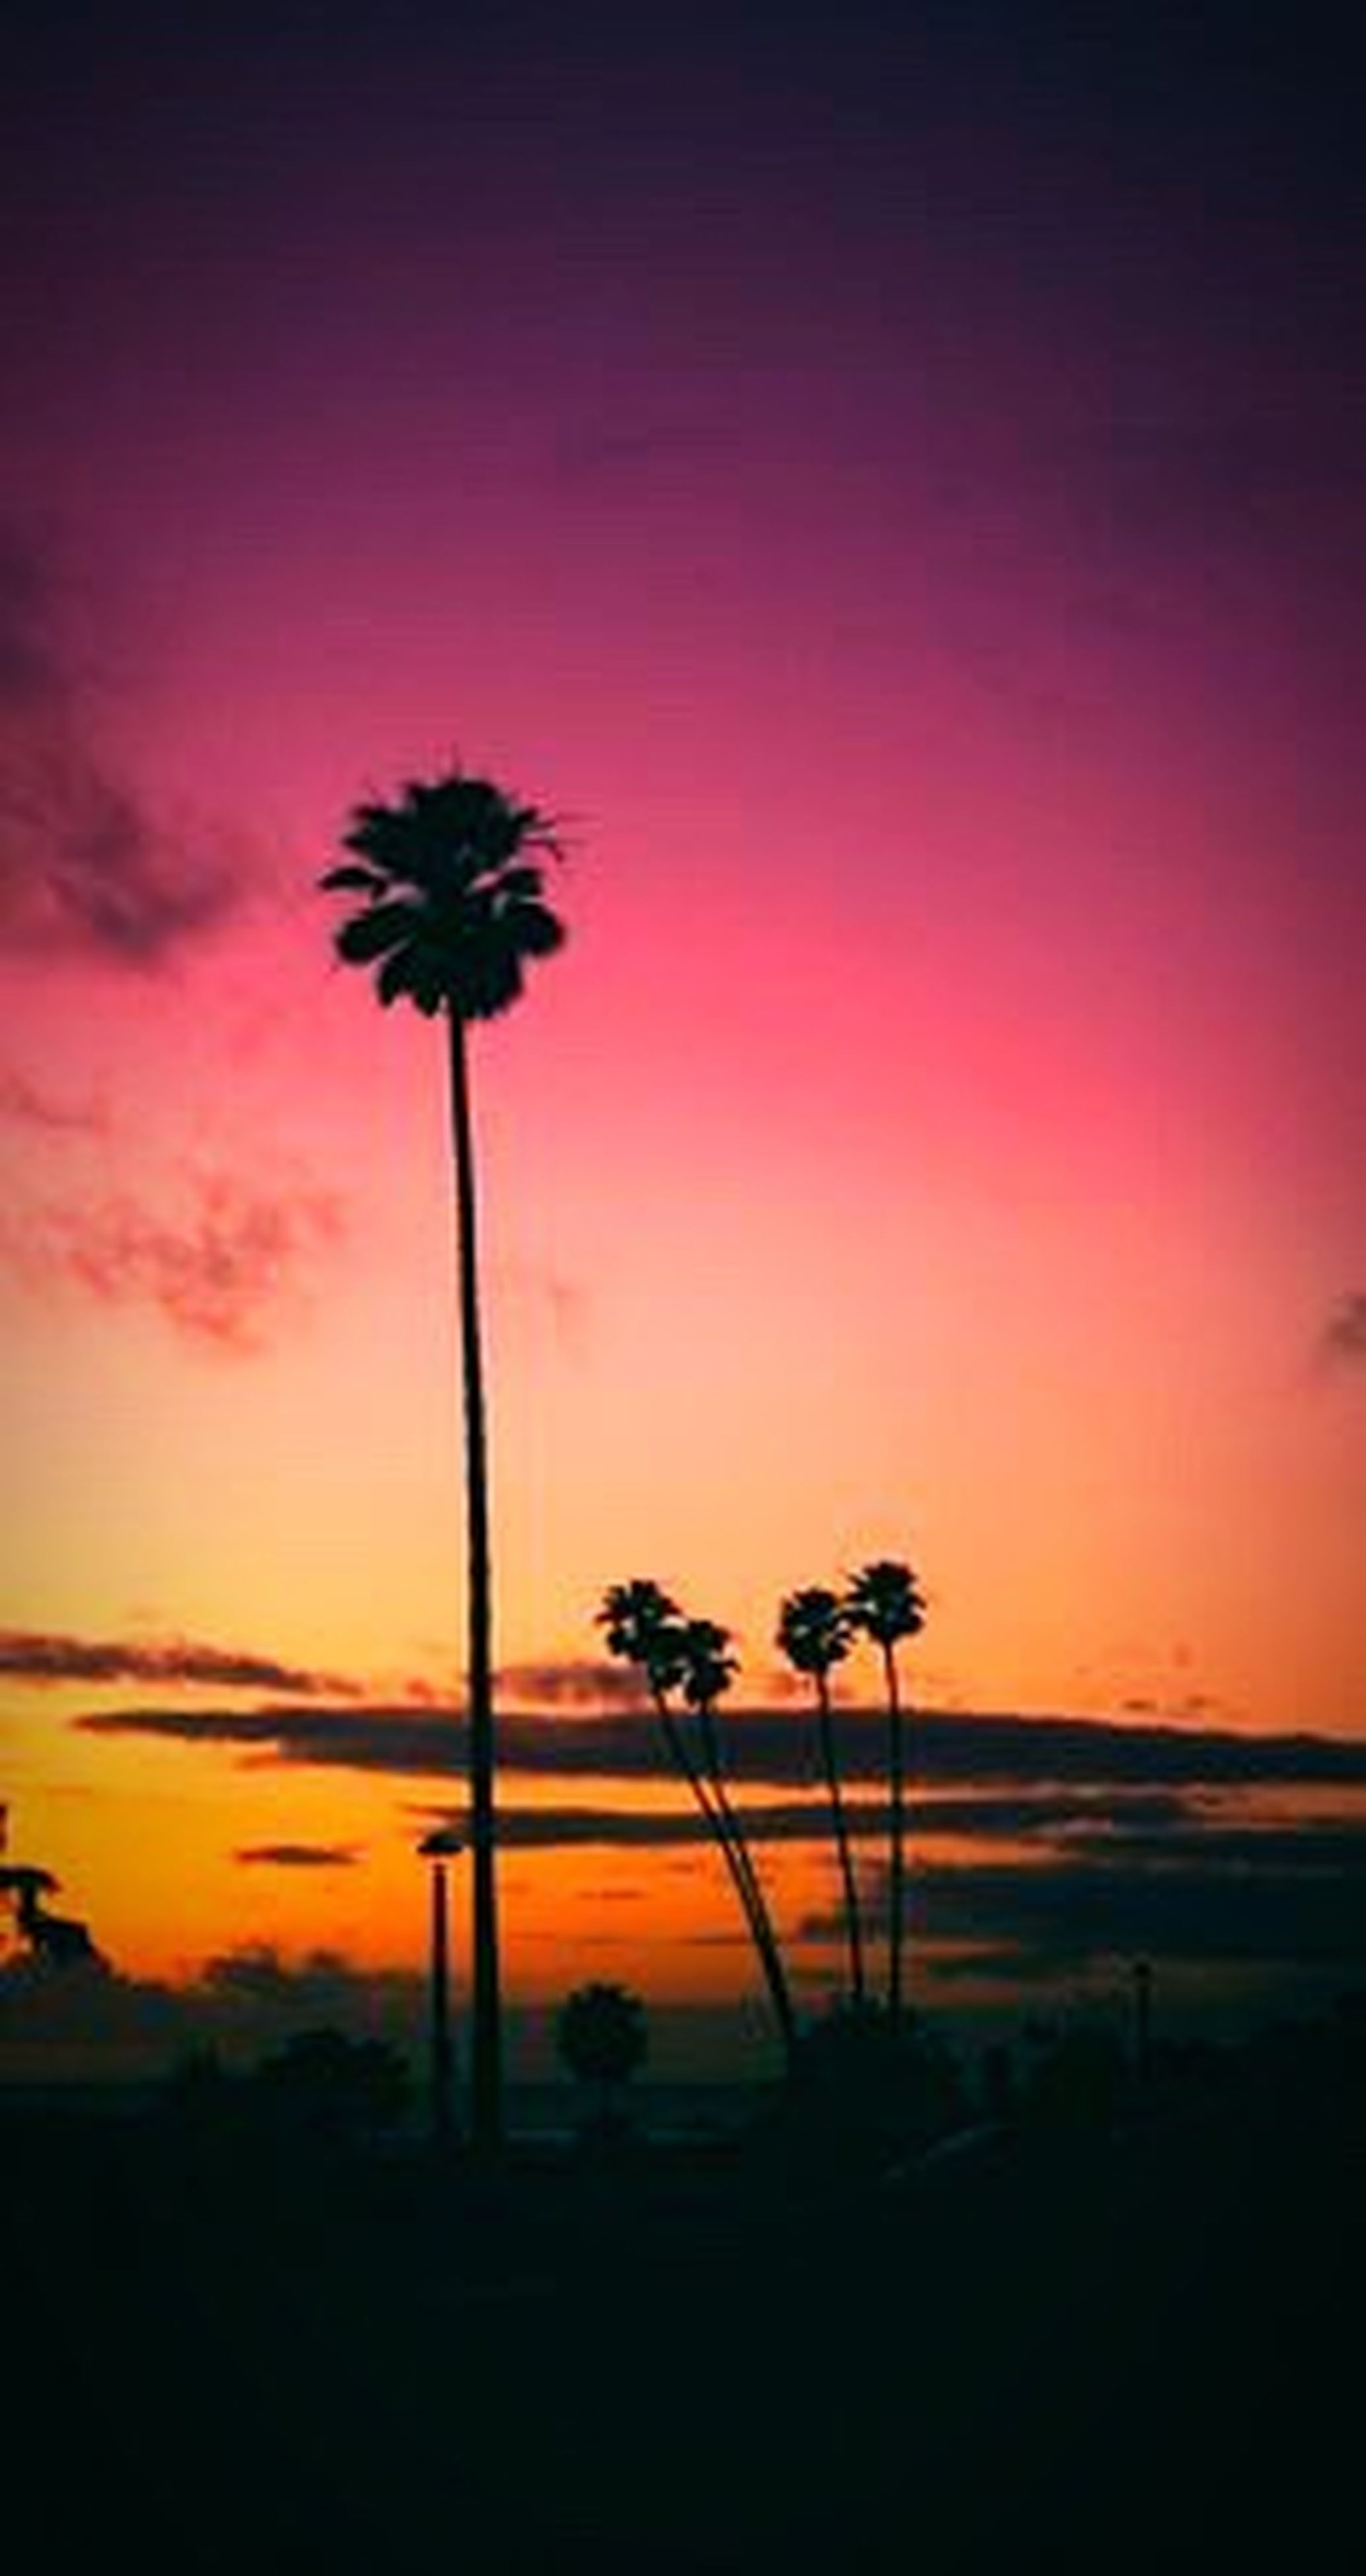 sunset, silhouette, palm tree, beauty in nature, tranquil scene, scenics, tranquility, solitude, nature, idyllic, growth, tree trunk, stem, dark, sky, dusk, calm, orange color, moody sky, outline, dramatic sky, plant, tall - high, outdoors, flower, cloud, sun, remote, romantic sky, tall, no people, majestic, atmospheric mood, pink color